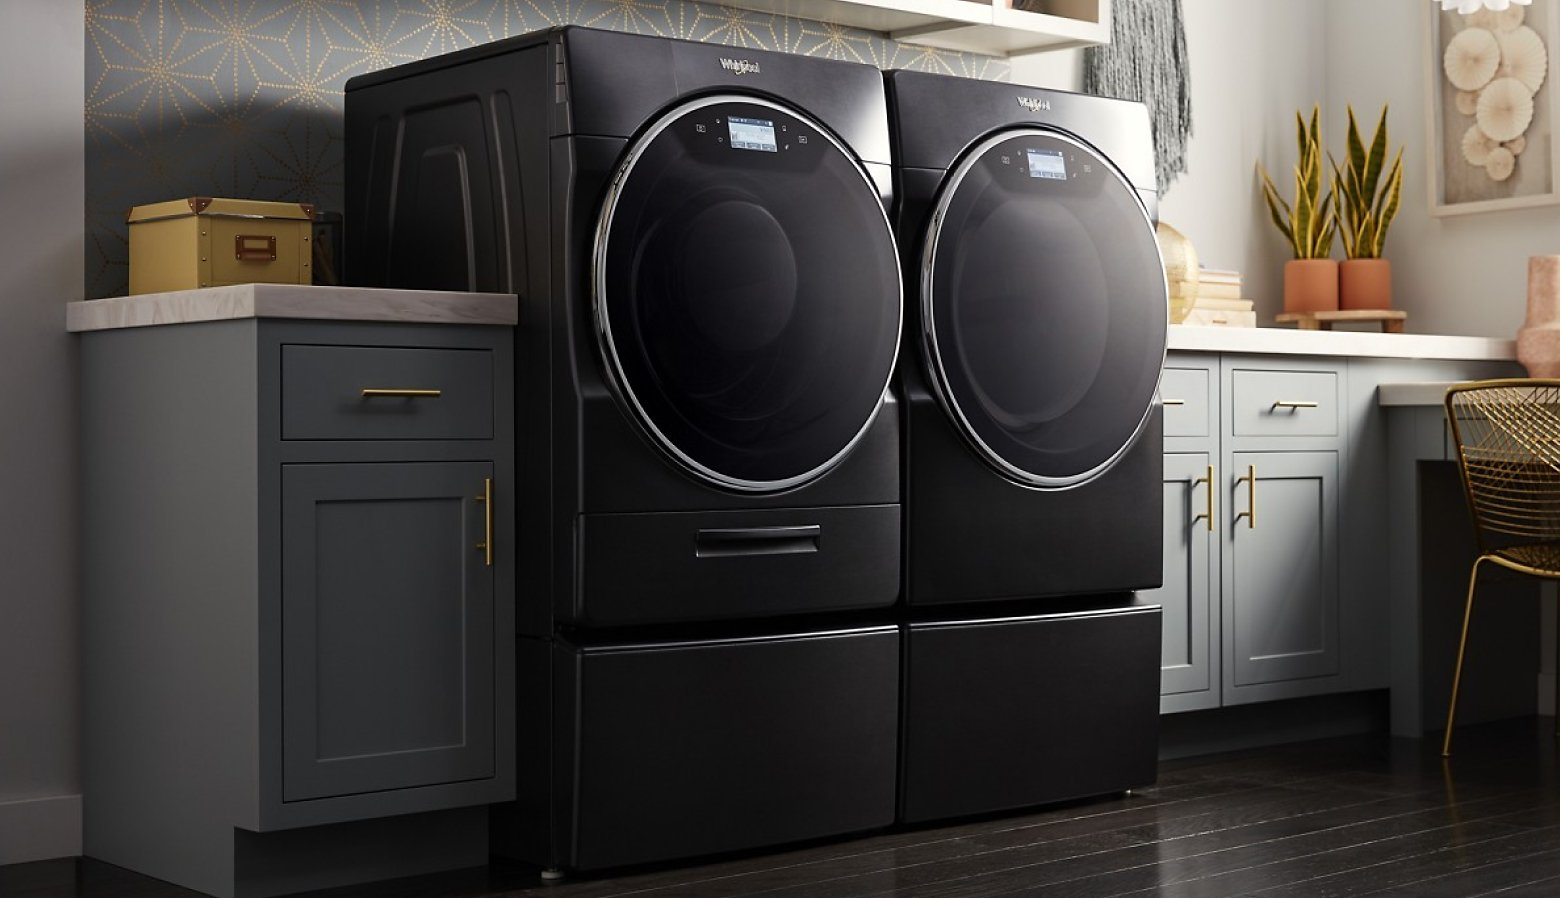 A front load washer and dryer in a white laundry room.